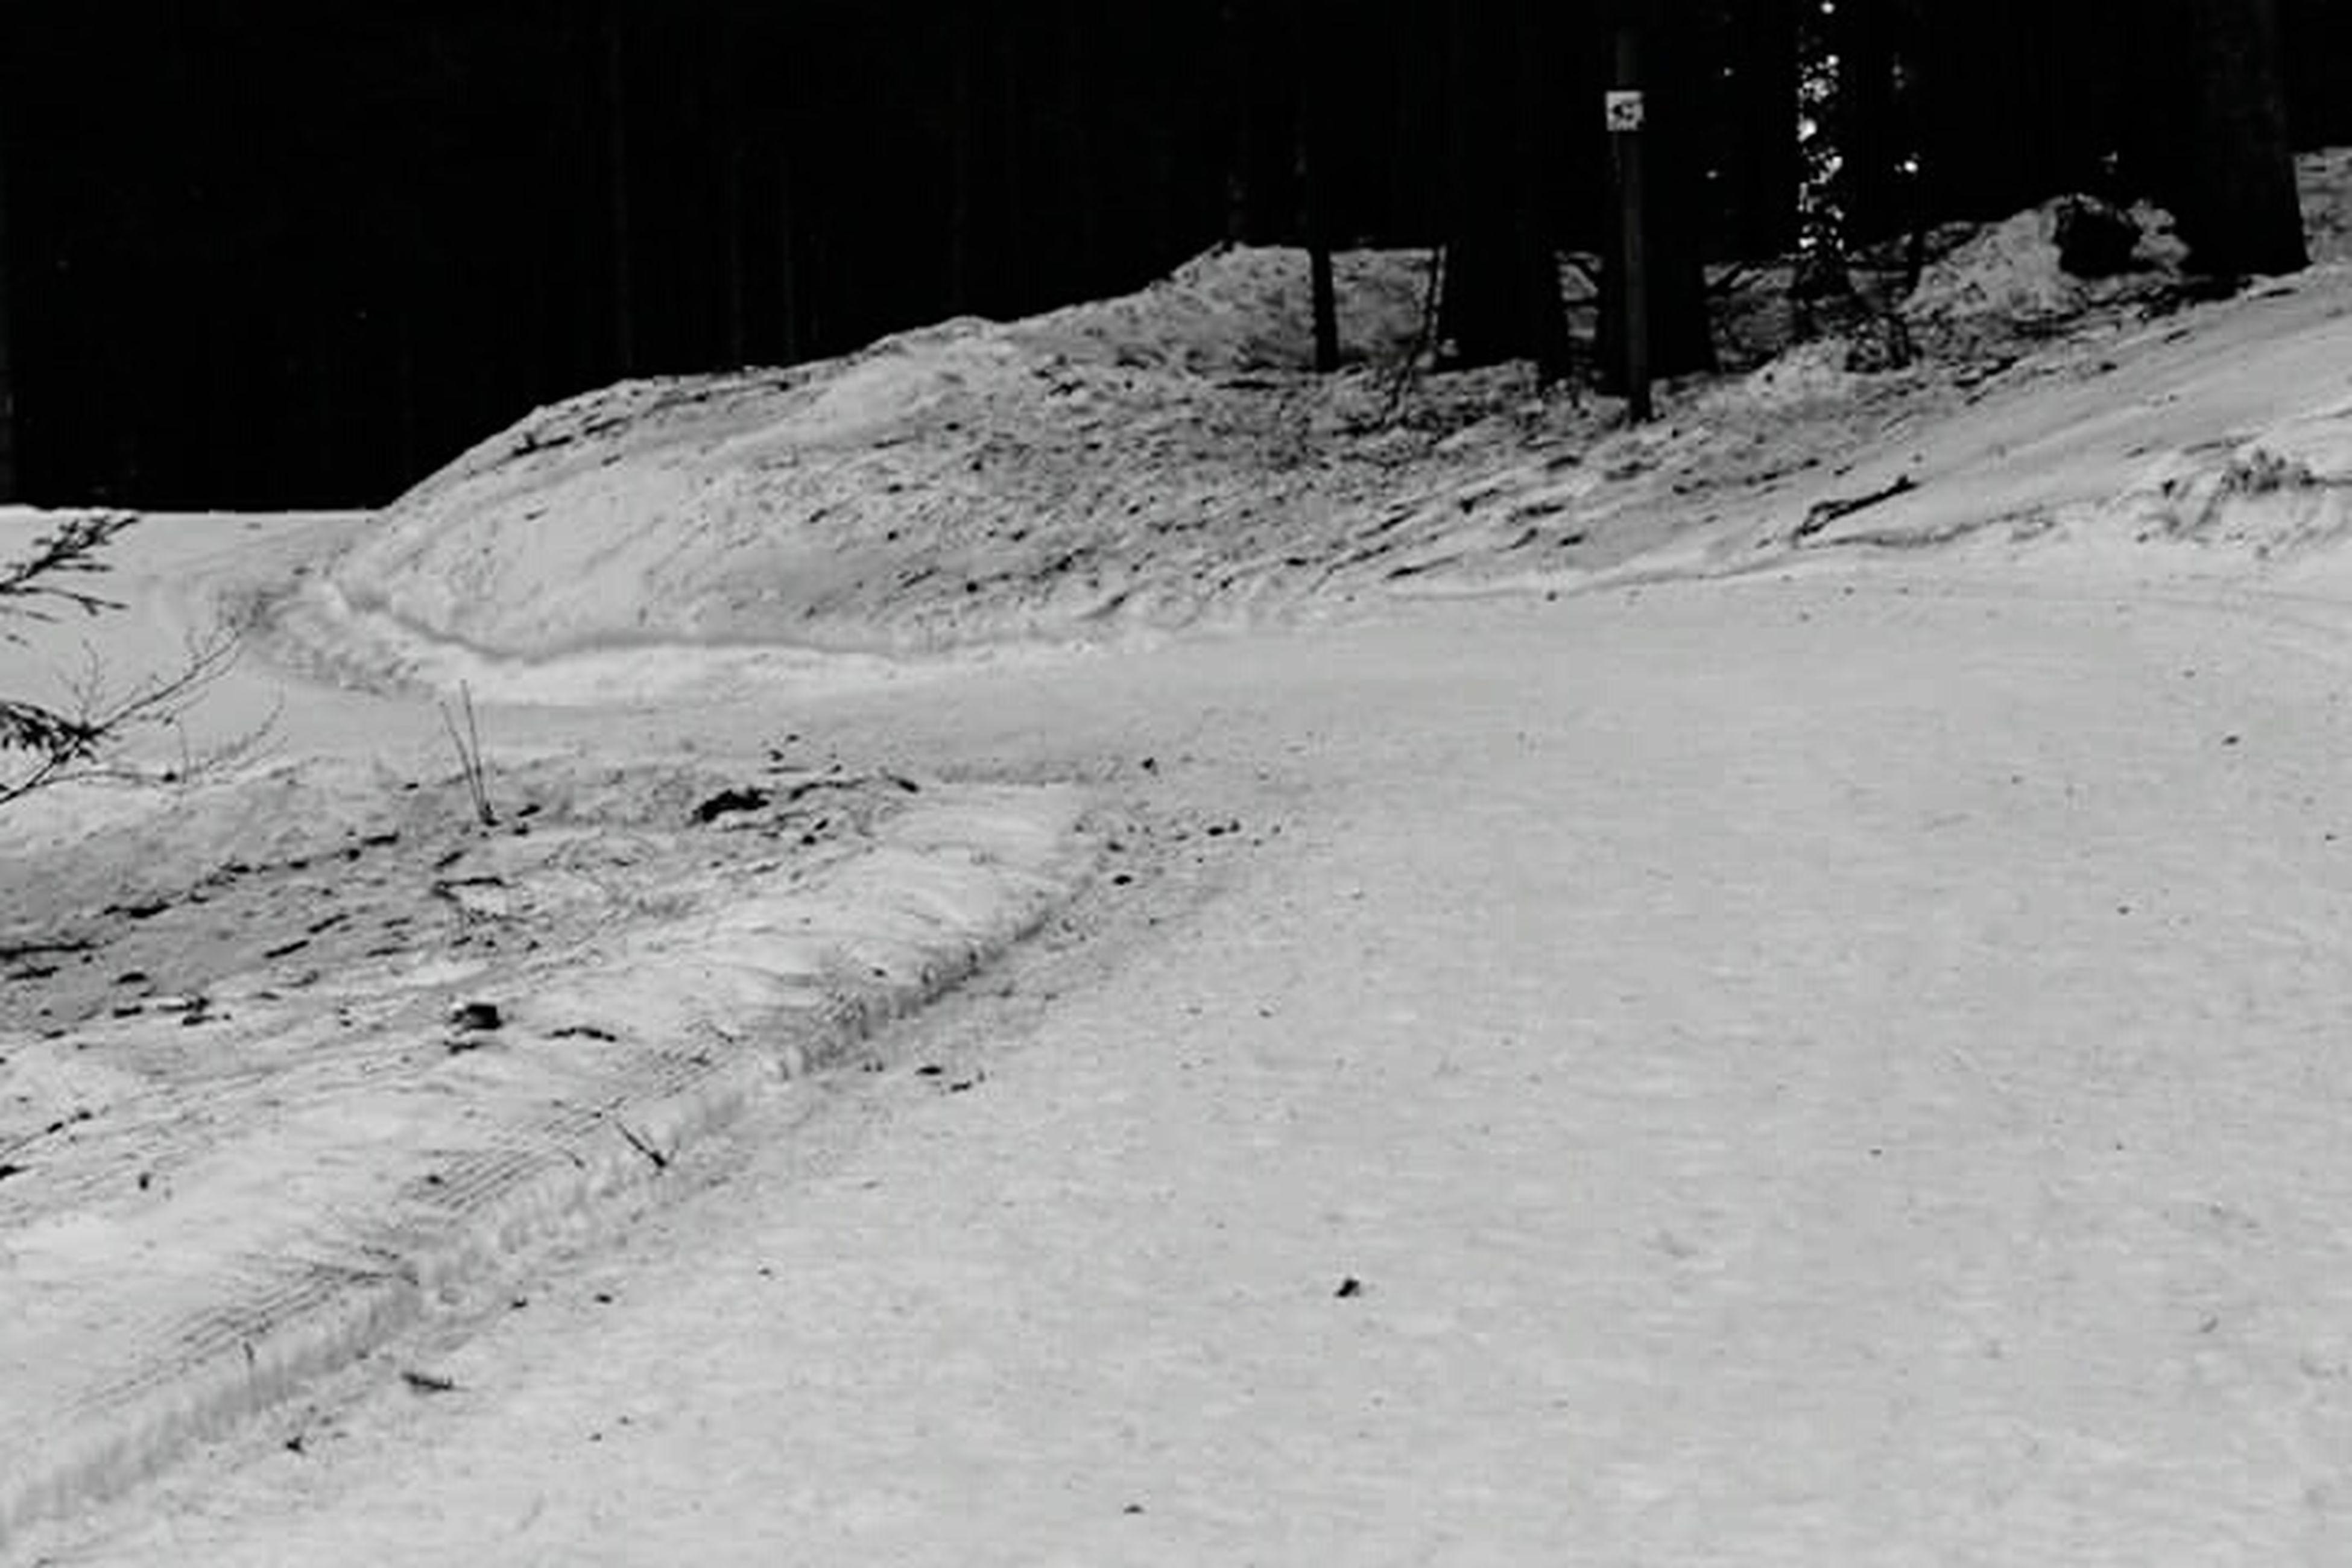 snow, winter, cold temperature, season, landscape, covering, weather, tranquility, white color, tranquil scene, nature, field, road, scenics, non-urban scene, beauty in nature, snow covered, outdoors, mountain, covered